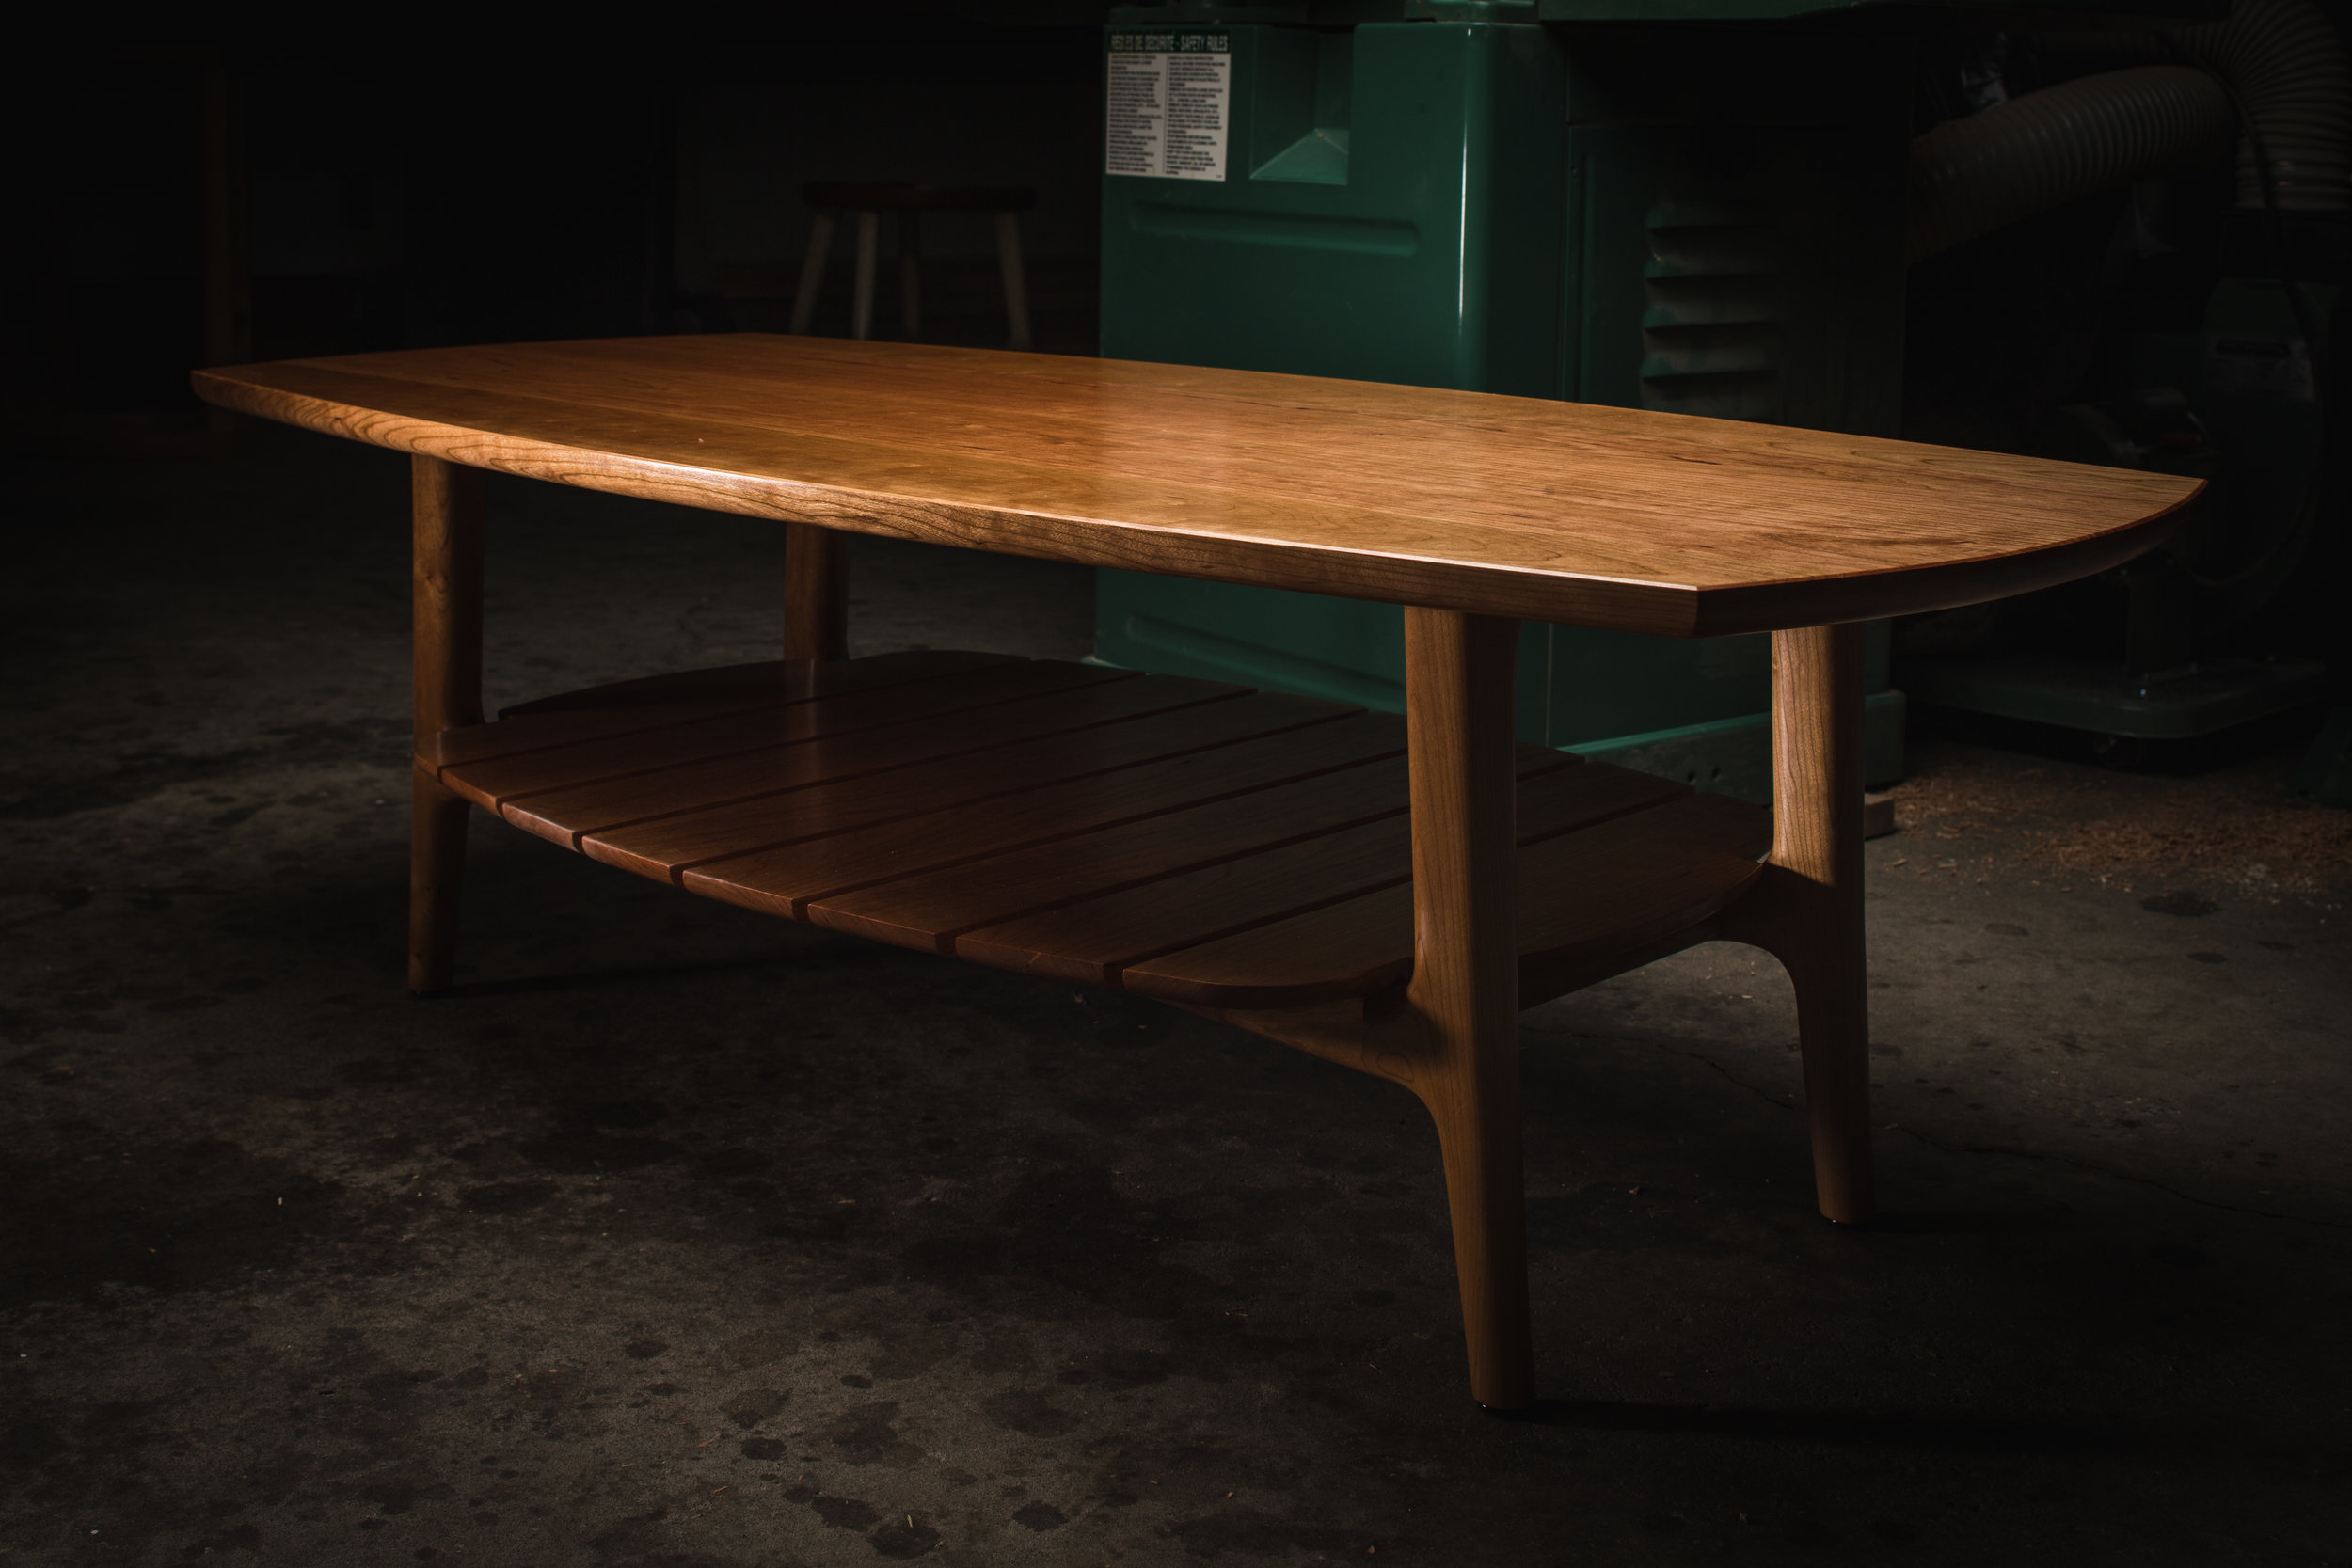 Cherry Coffee Table from the Ceremony Exhibit